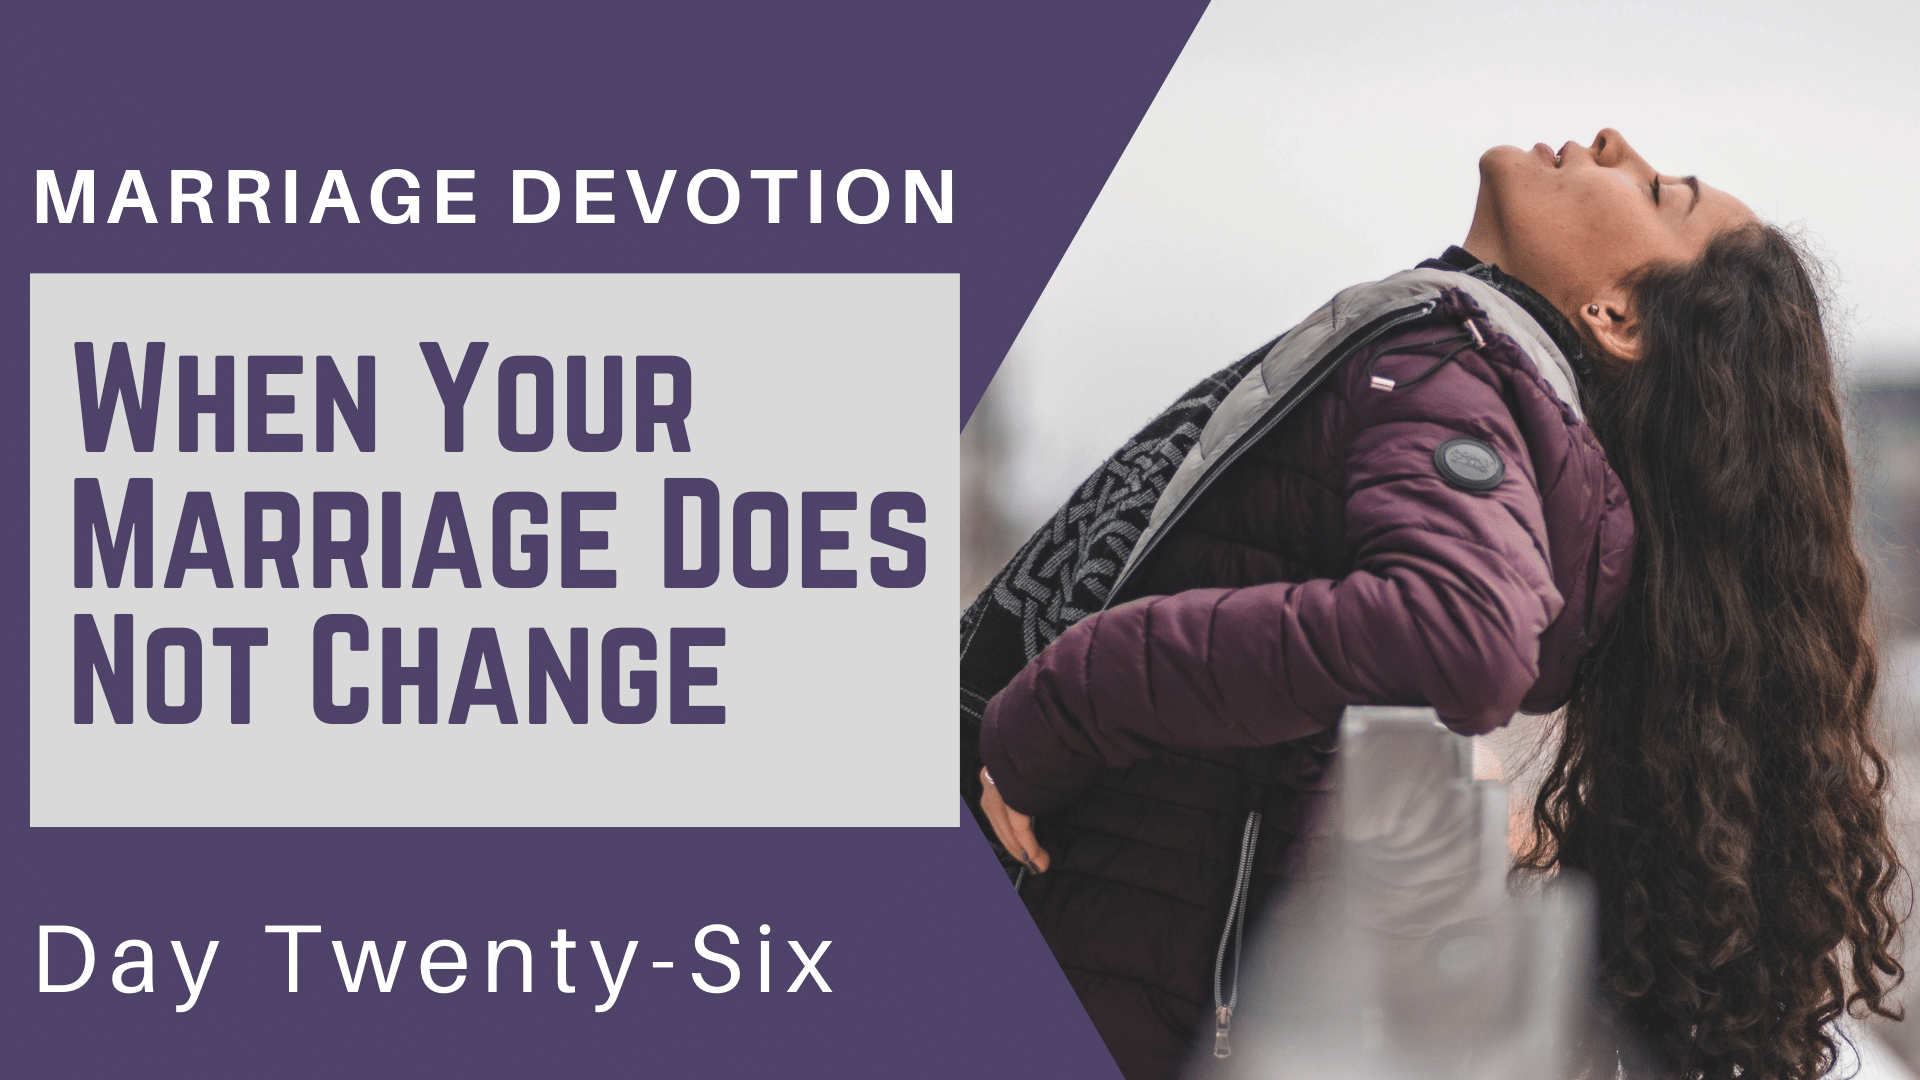 Marriage Devotion Day 26 – When Your Marriage Does Not Change